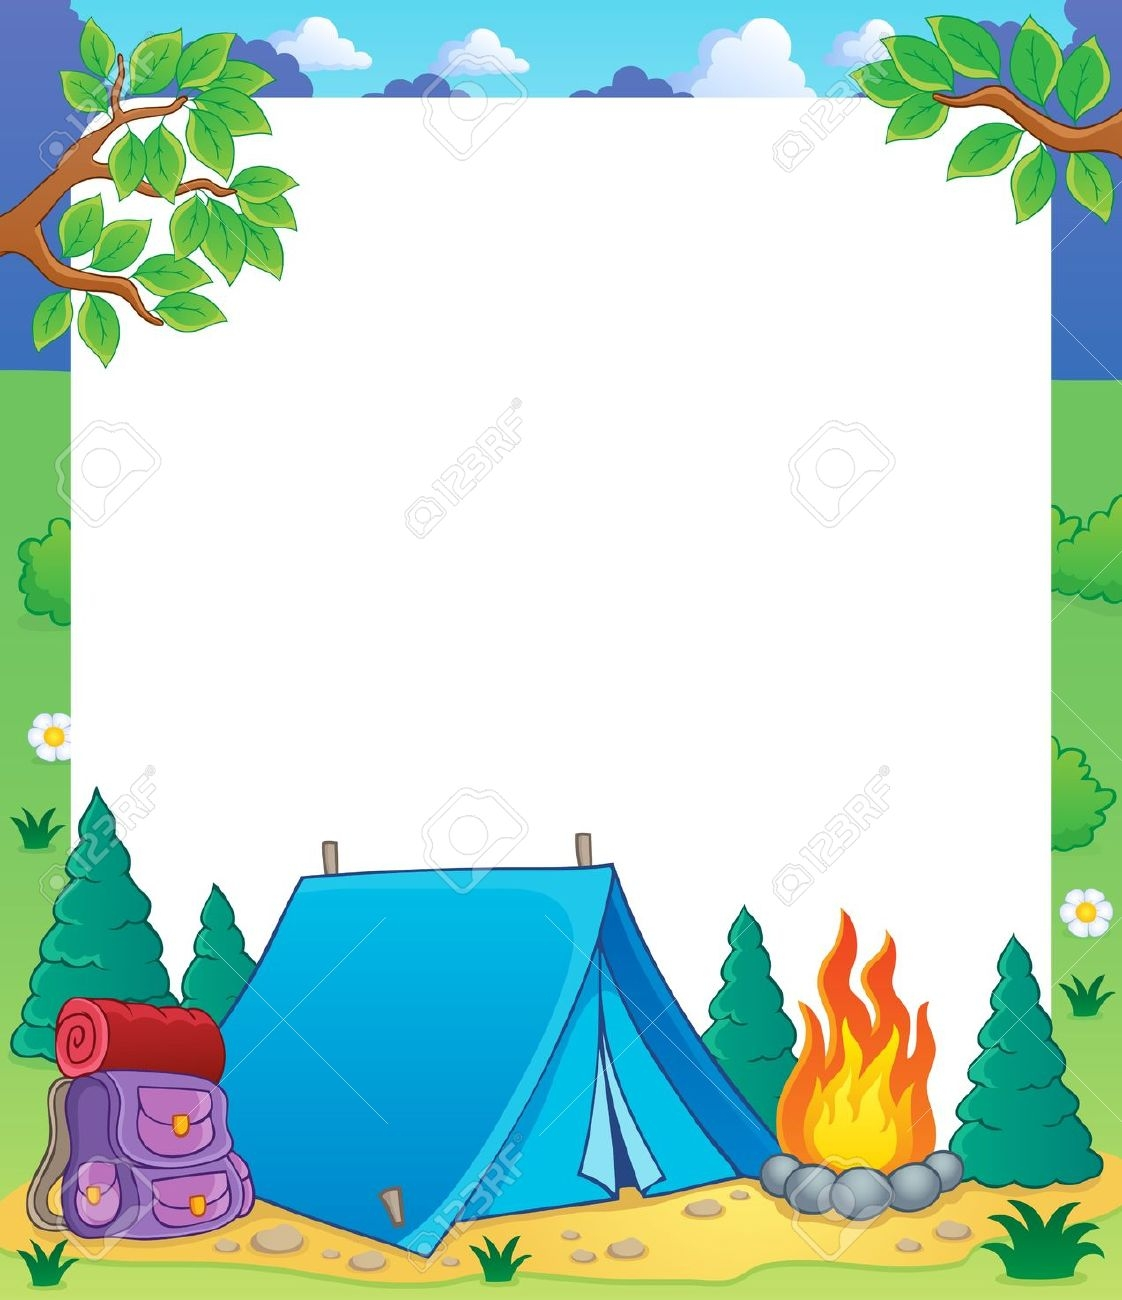 247 Free Camping free clipart.